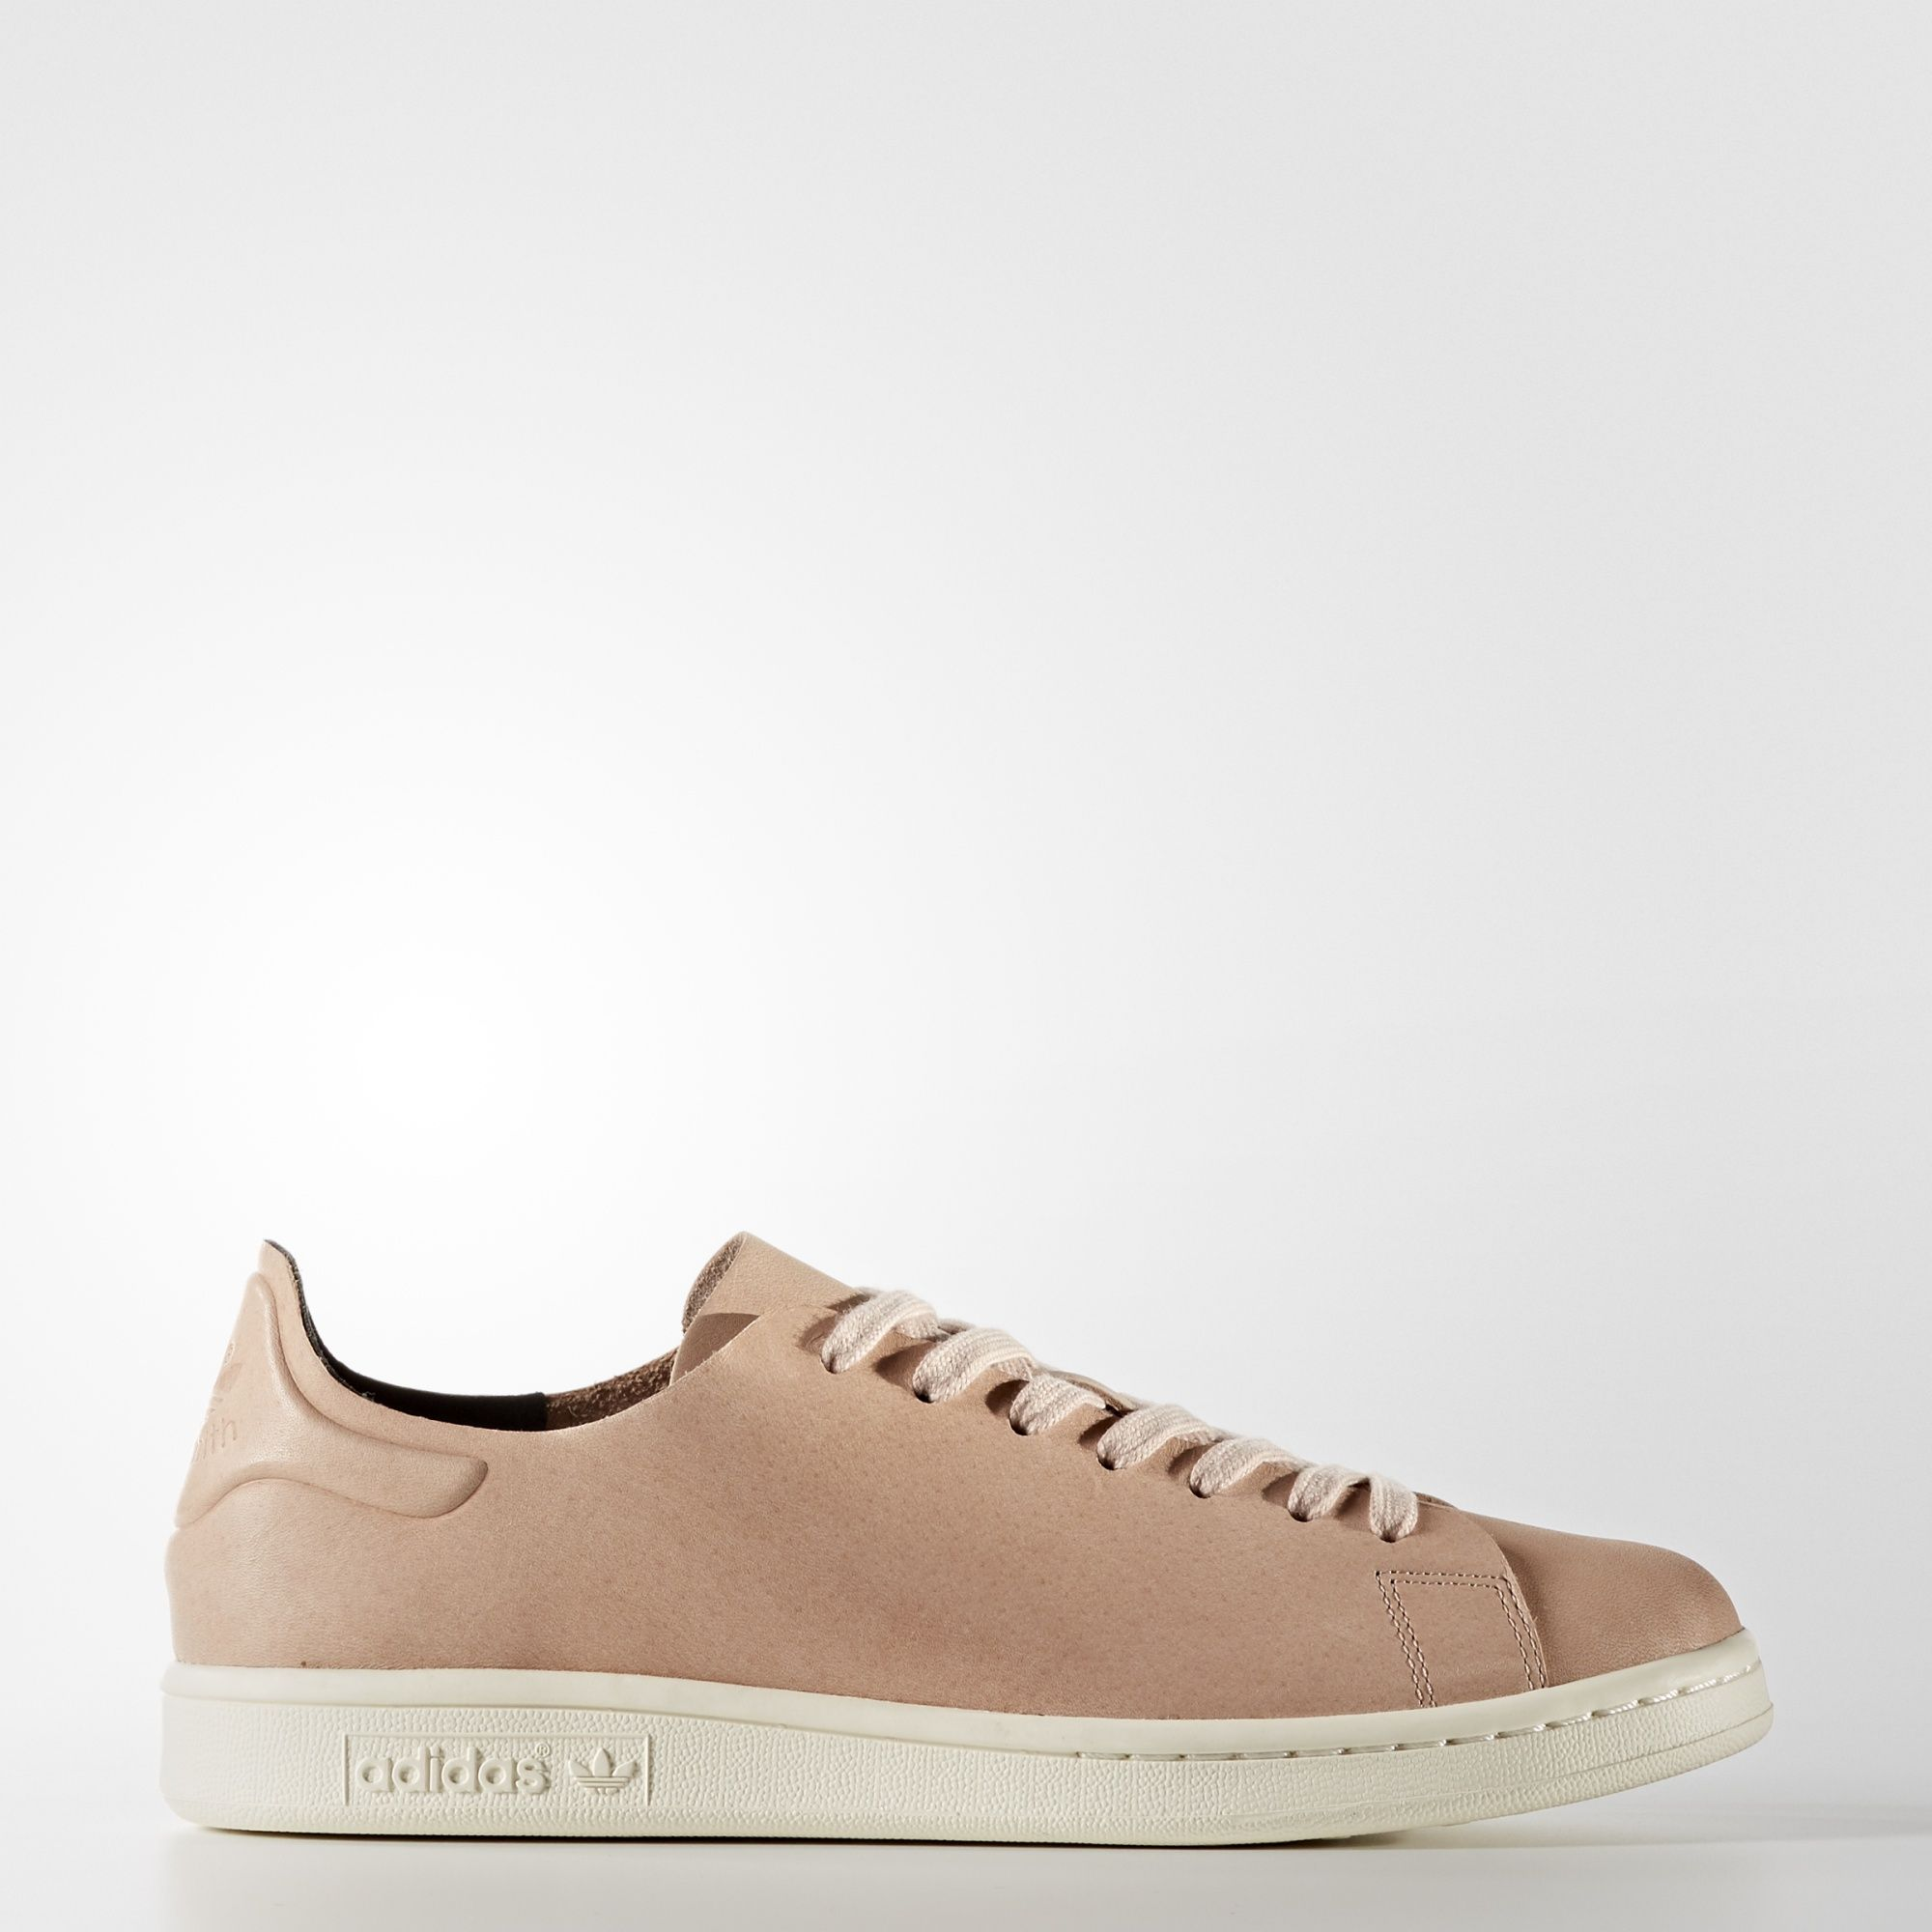 Stan Smith Nude Shoes